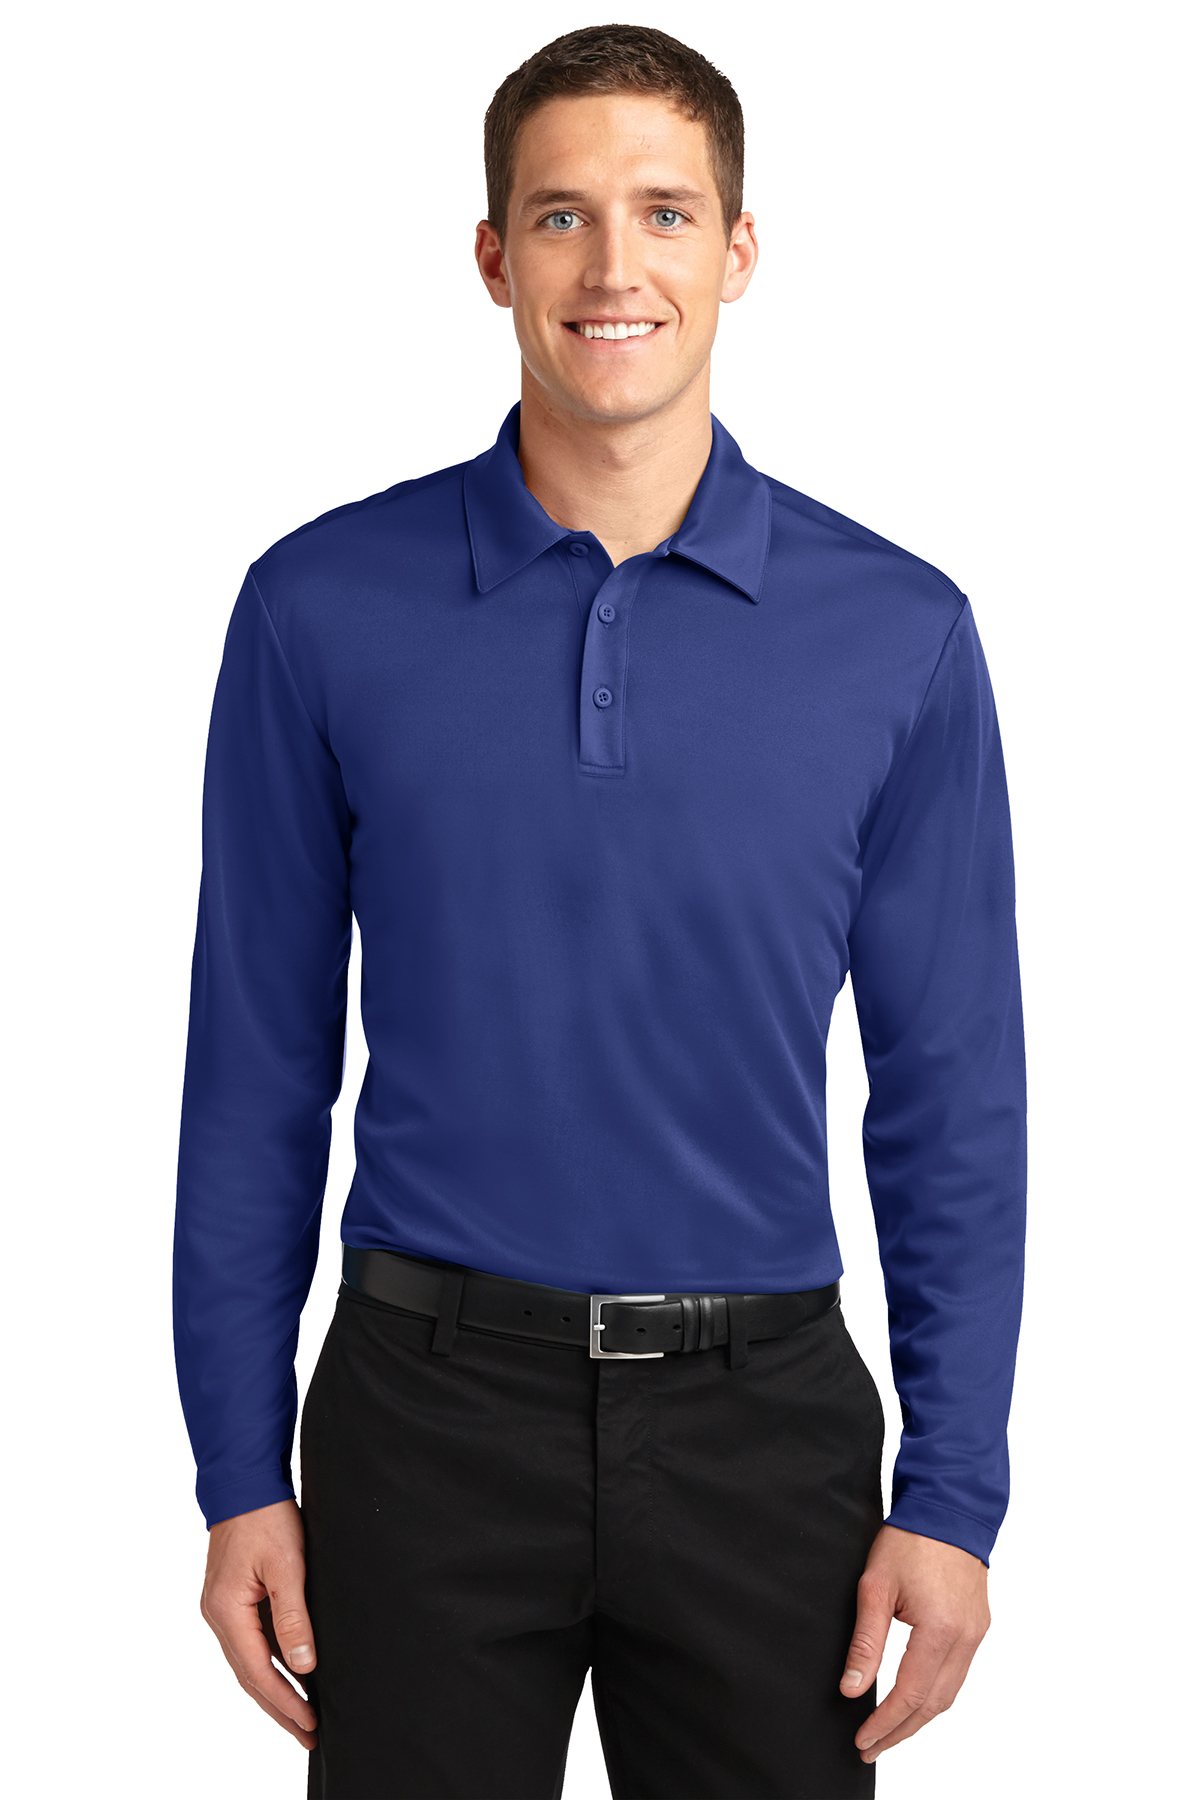 Port Authority® Silk Touch™ Performance Long Sleeve Polo. K540LS Steel Grey L btypPO